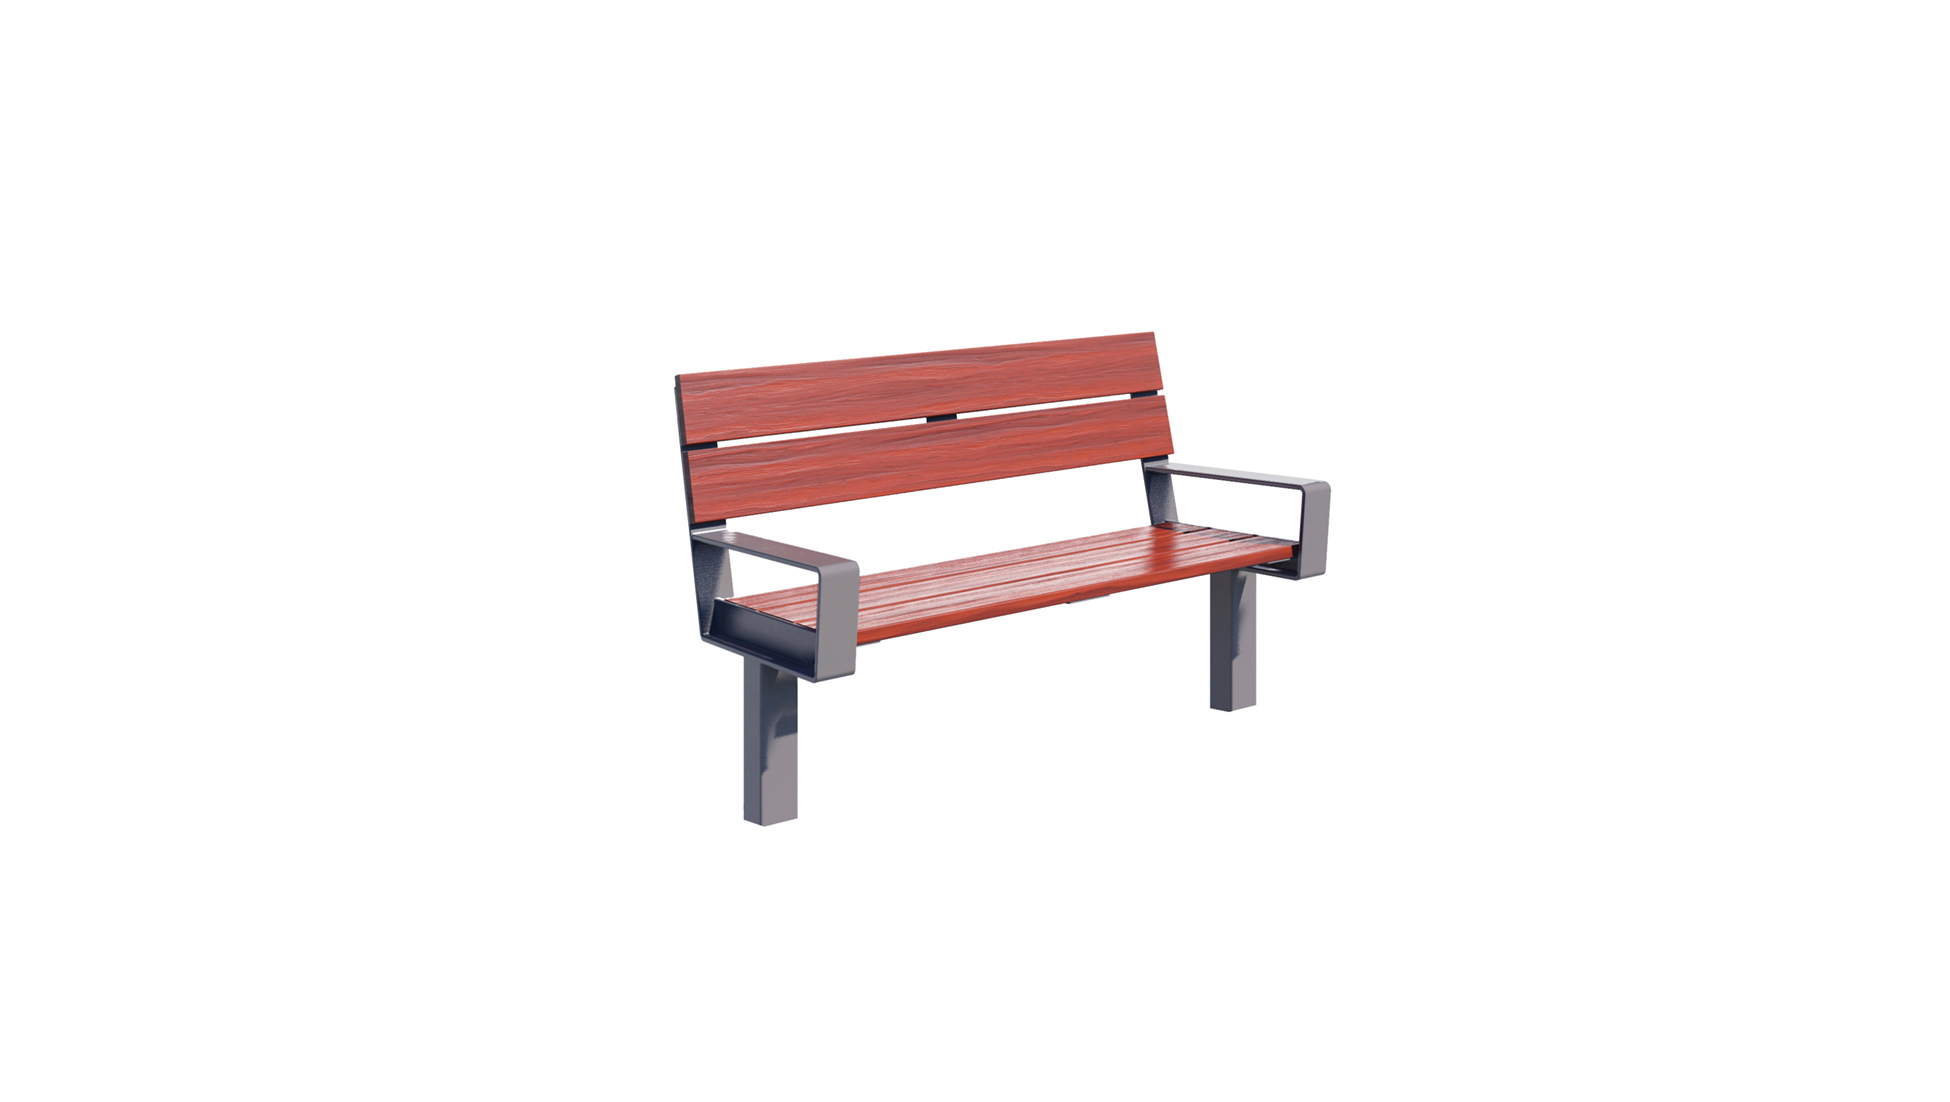 Series 1700 Bench, 4', Batu Wood